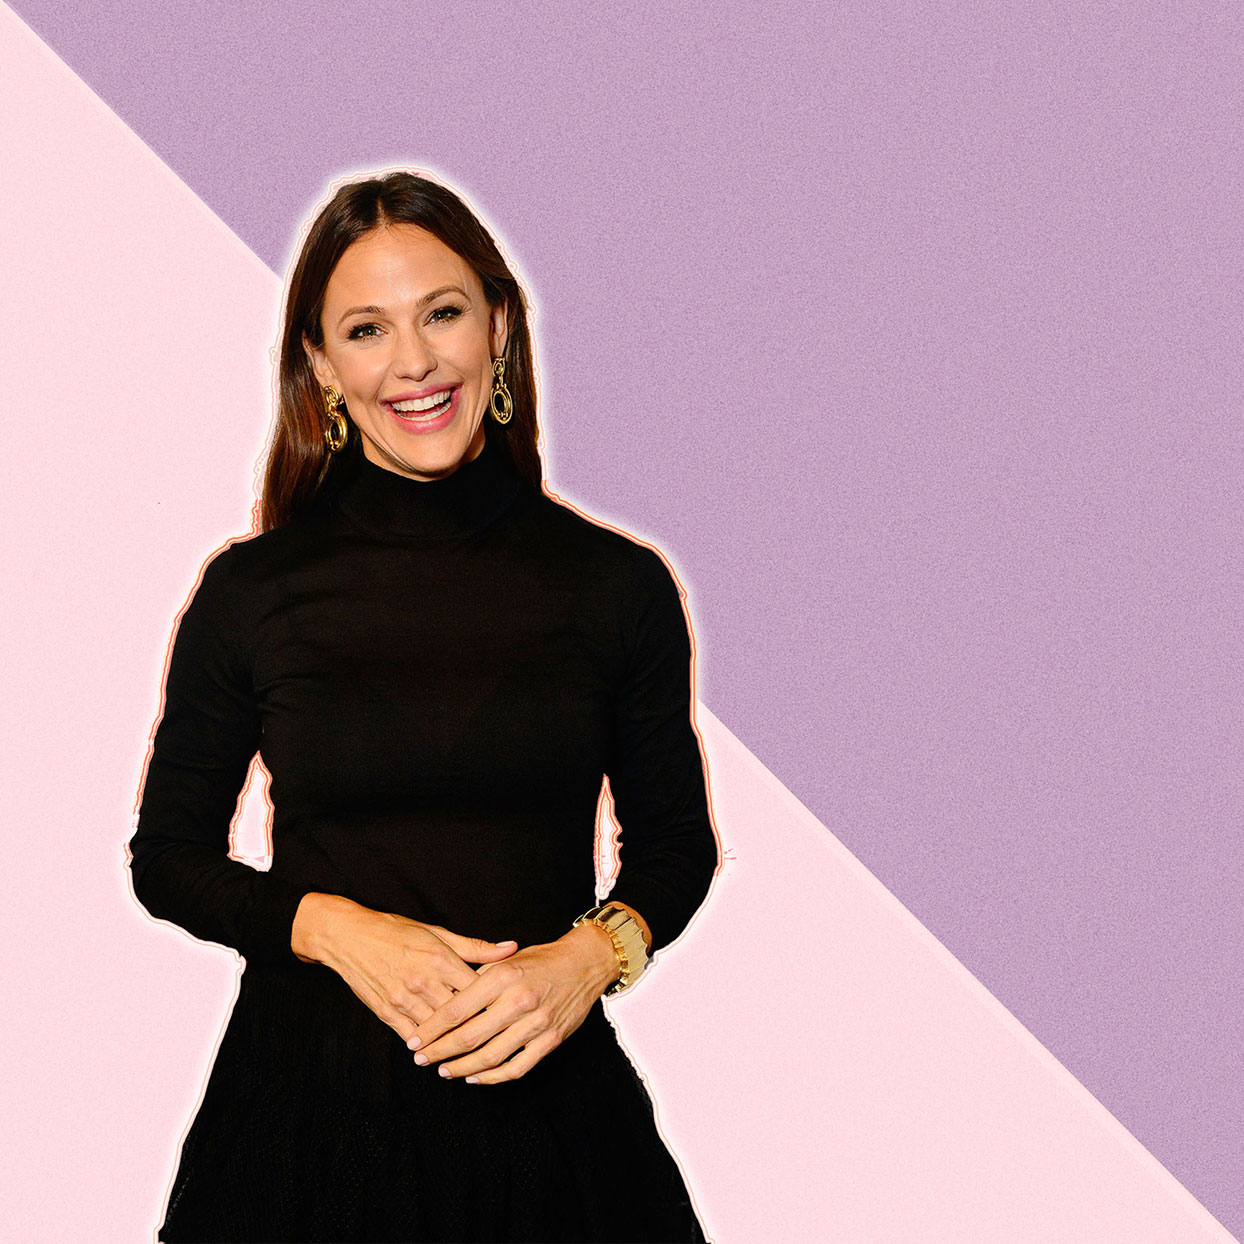 Jennifer Garner smiling